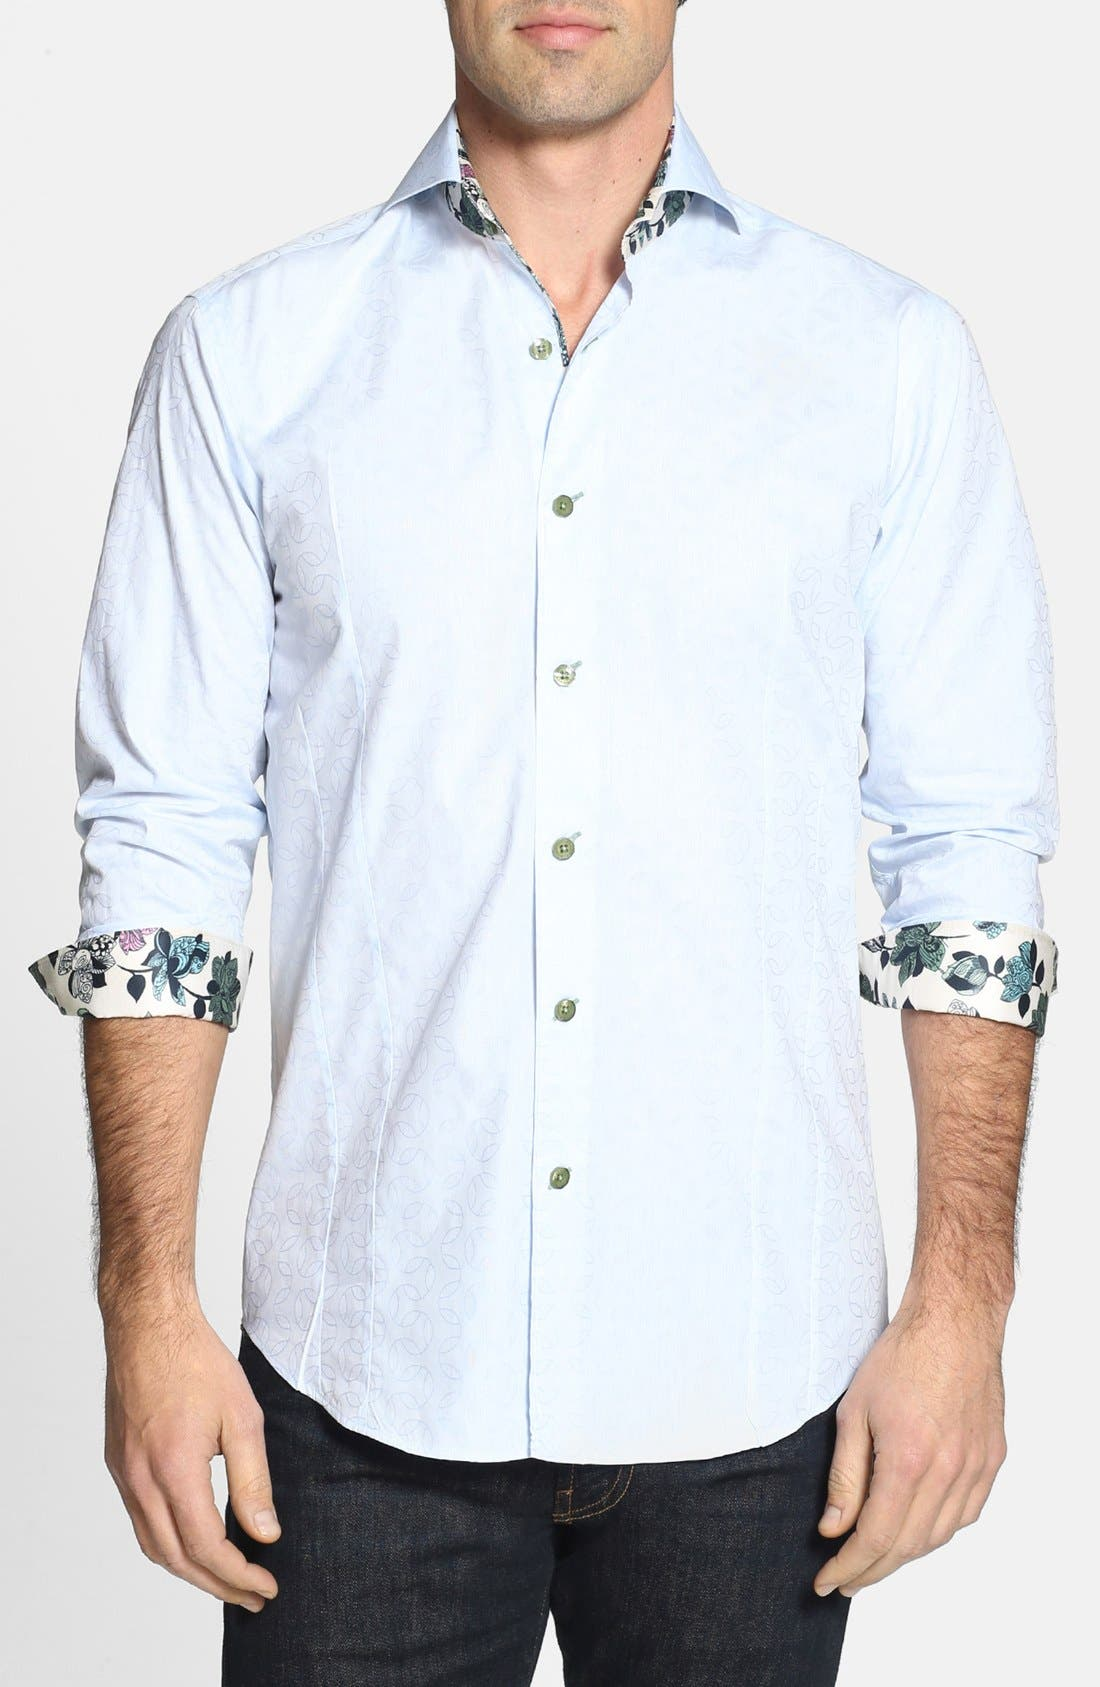 Alternate Image 1 Selected - Bogosse 'D-Mateo' Trim Fit Sport Shirt